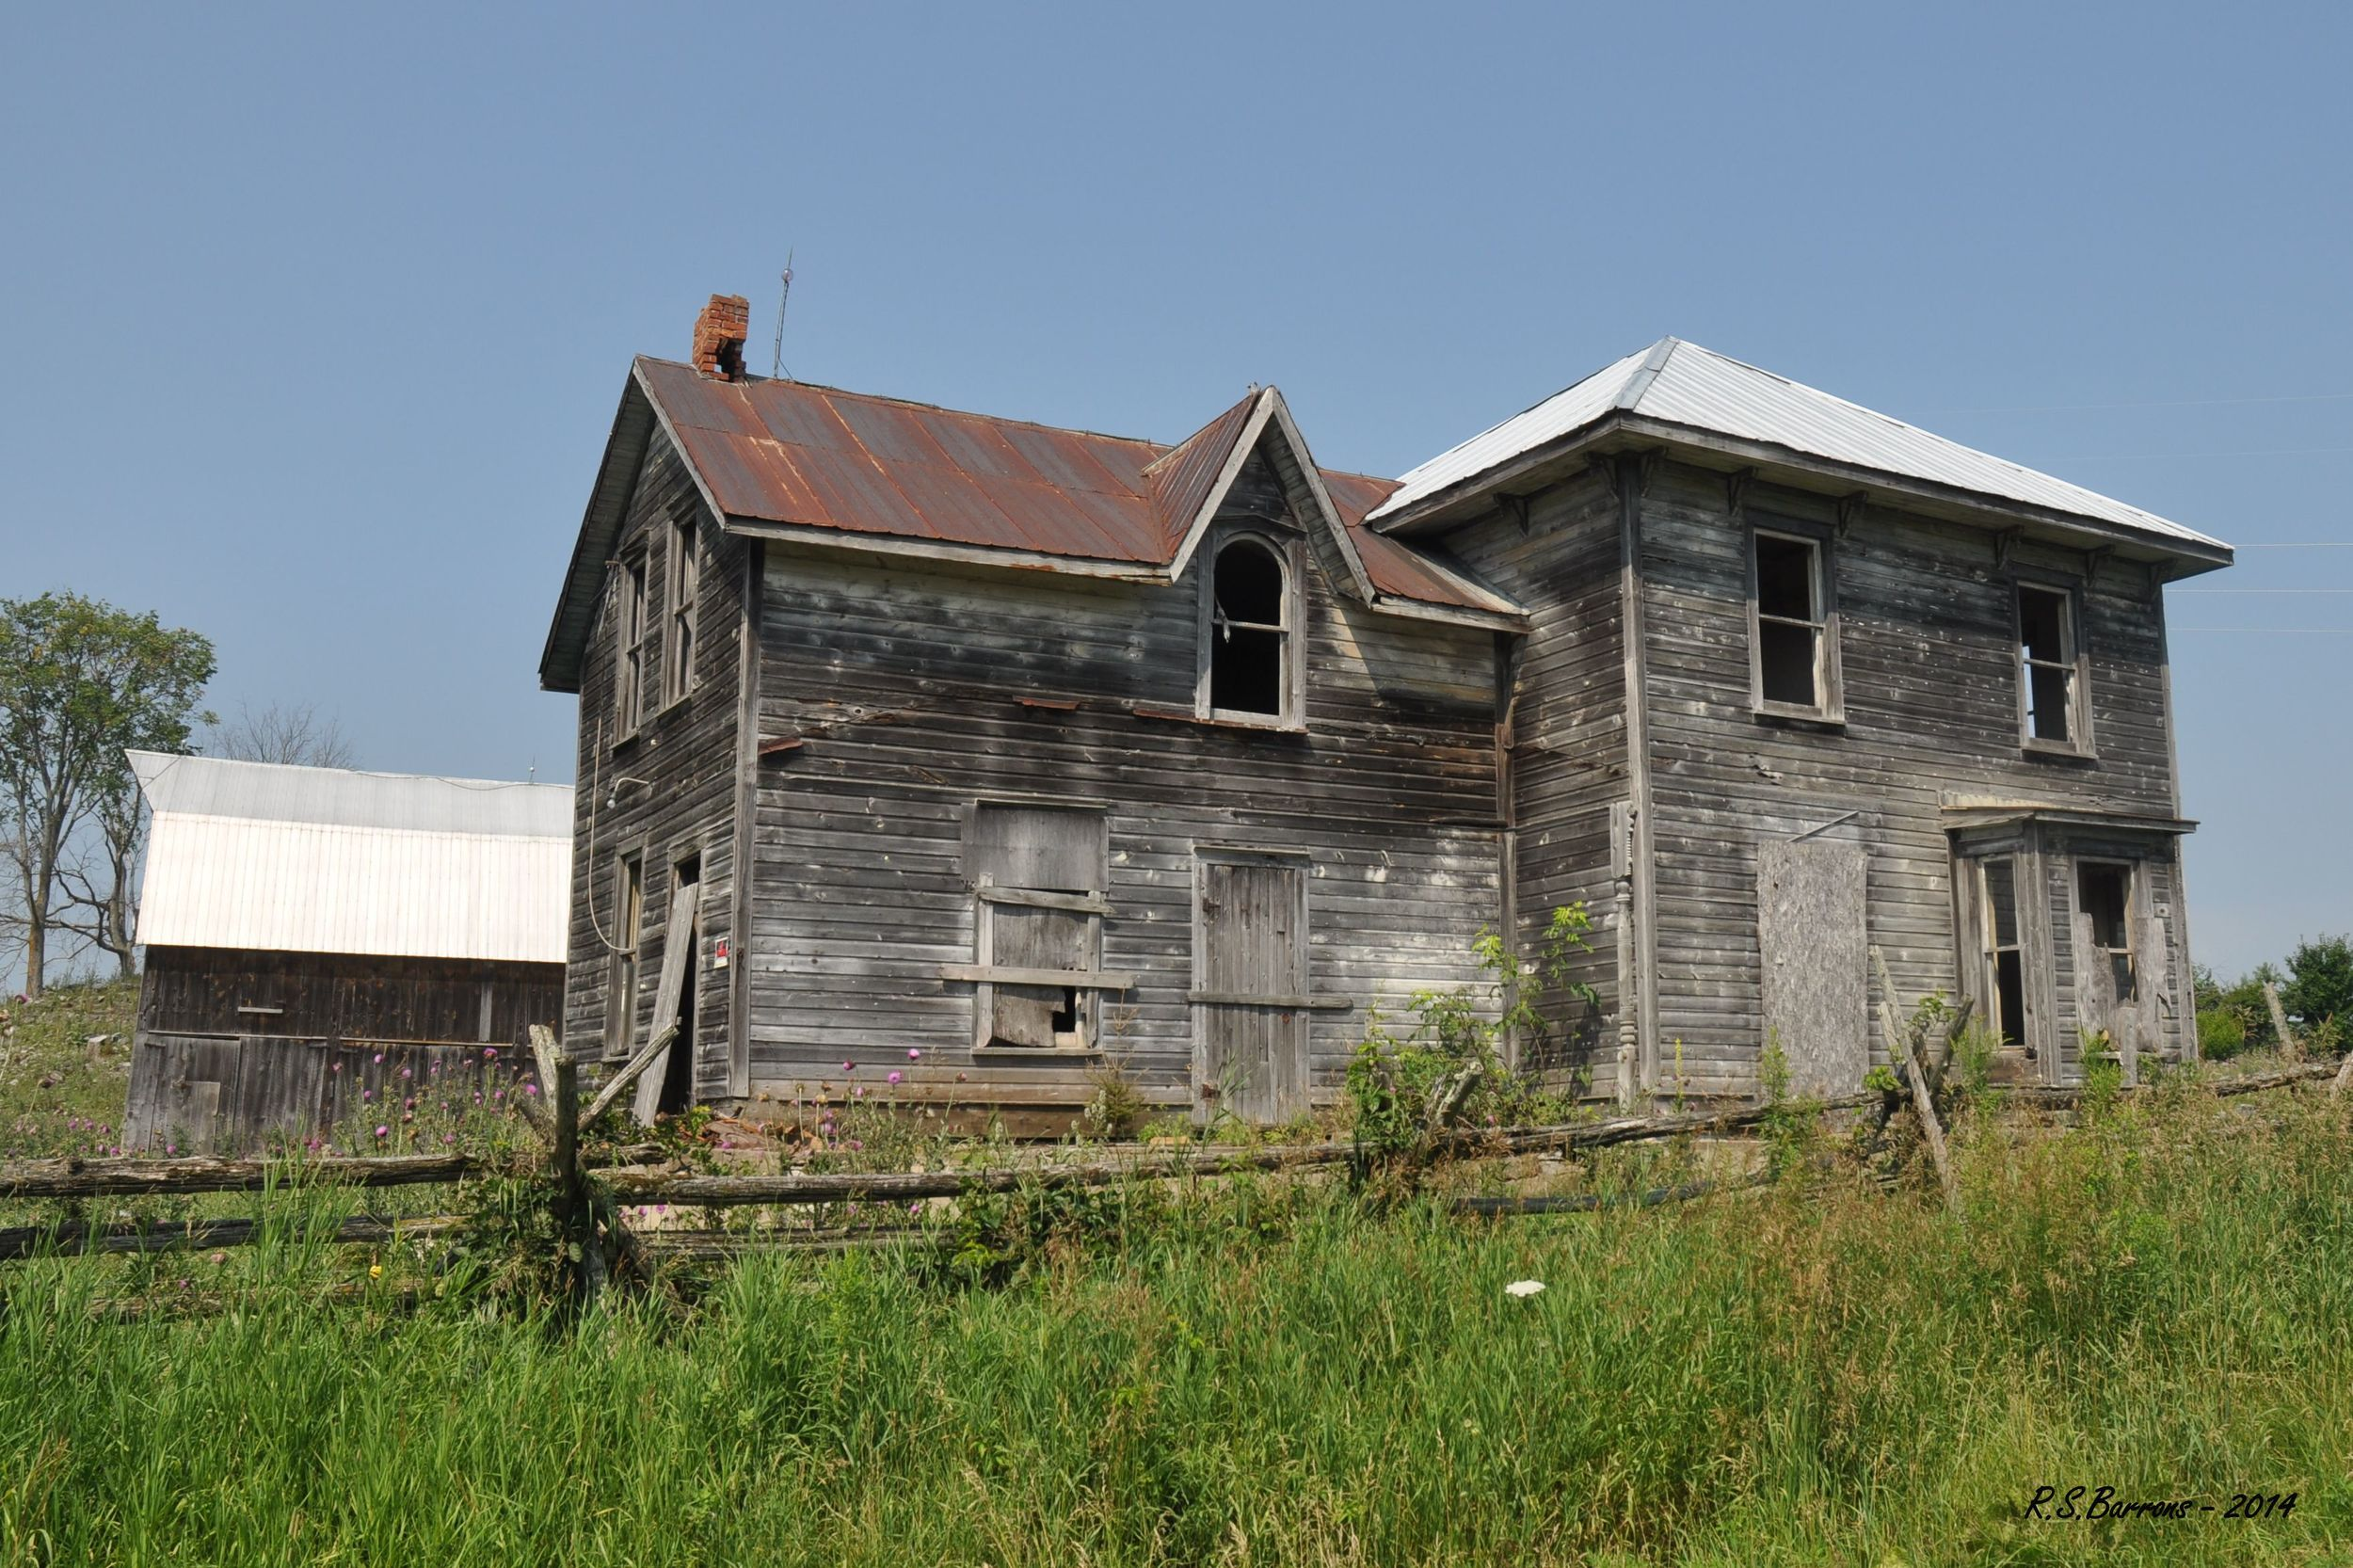 Ronald Barrons writes: My favourite abandoned place is the old Sopha house located at the end of the Vansickle road. I am not sure when the last person lived there, but seem to recall a Craig Sopha that may have lived there in 1950's. It remained in the Sopha family until just a few years ago.